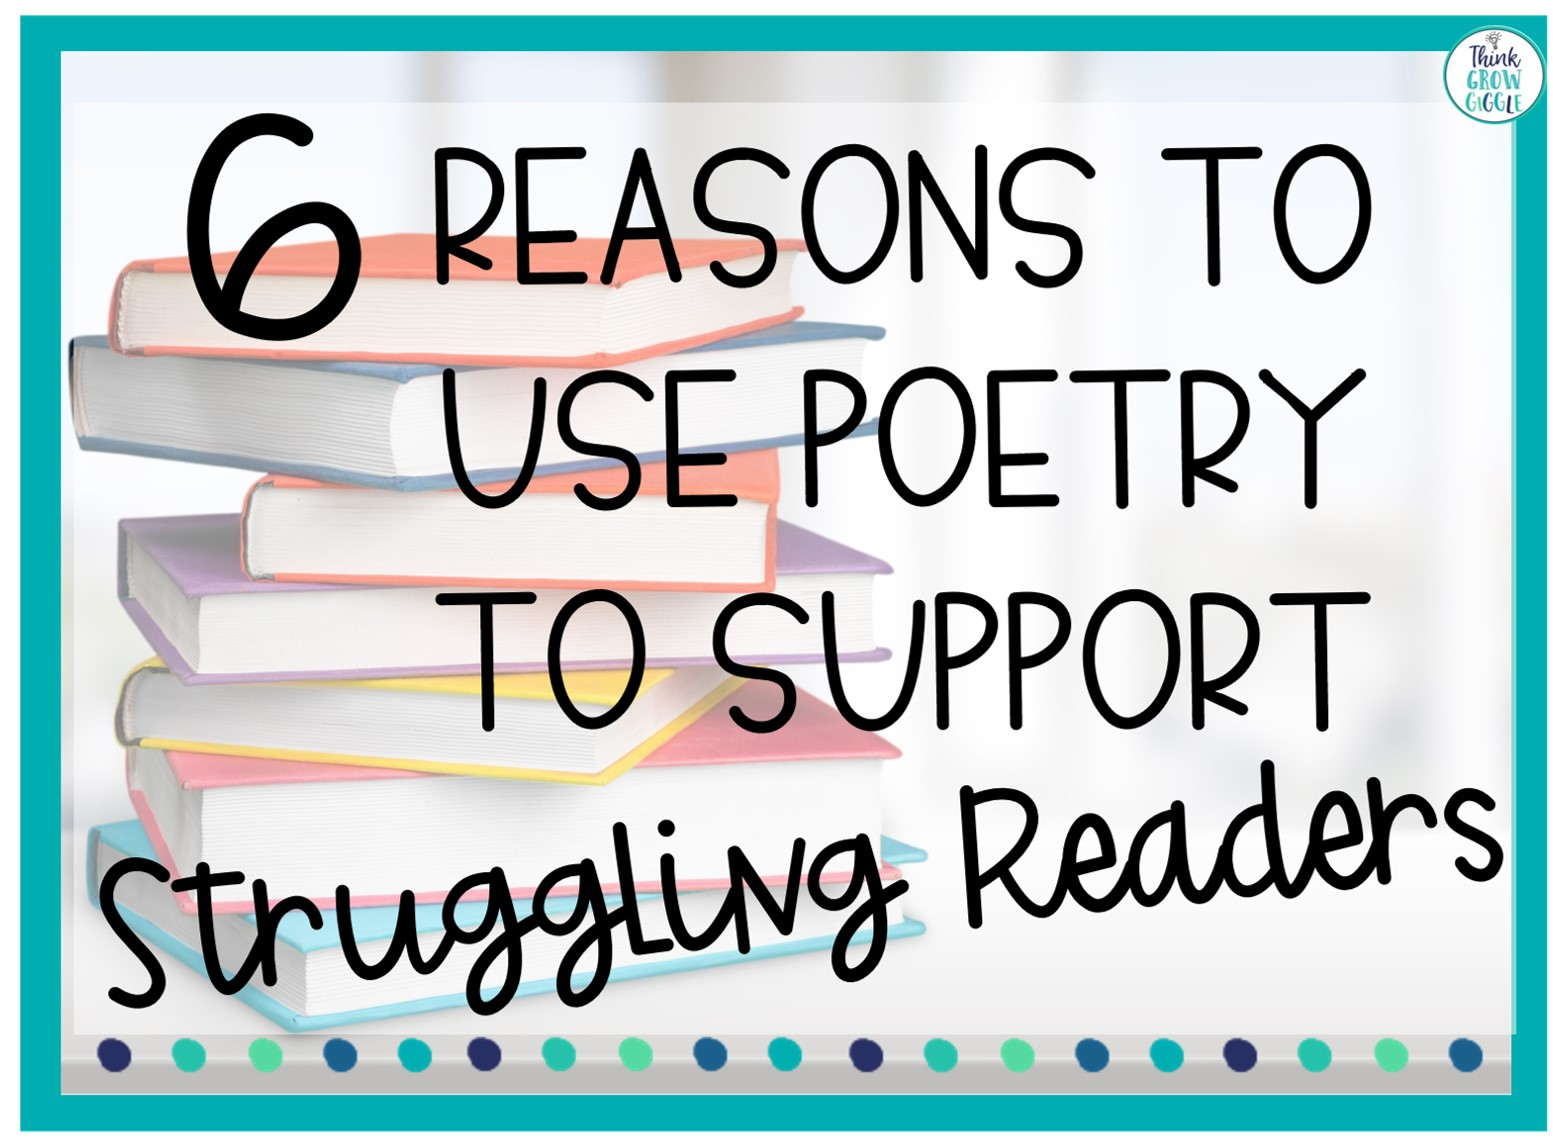 6 reasons to use poetry to support stuggling readers